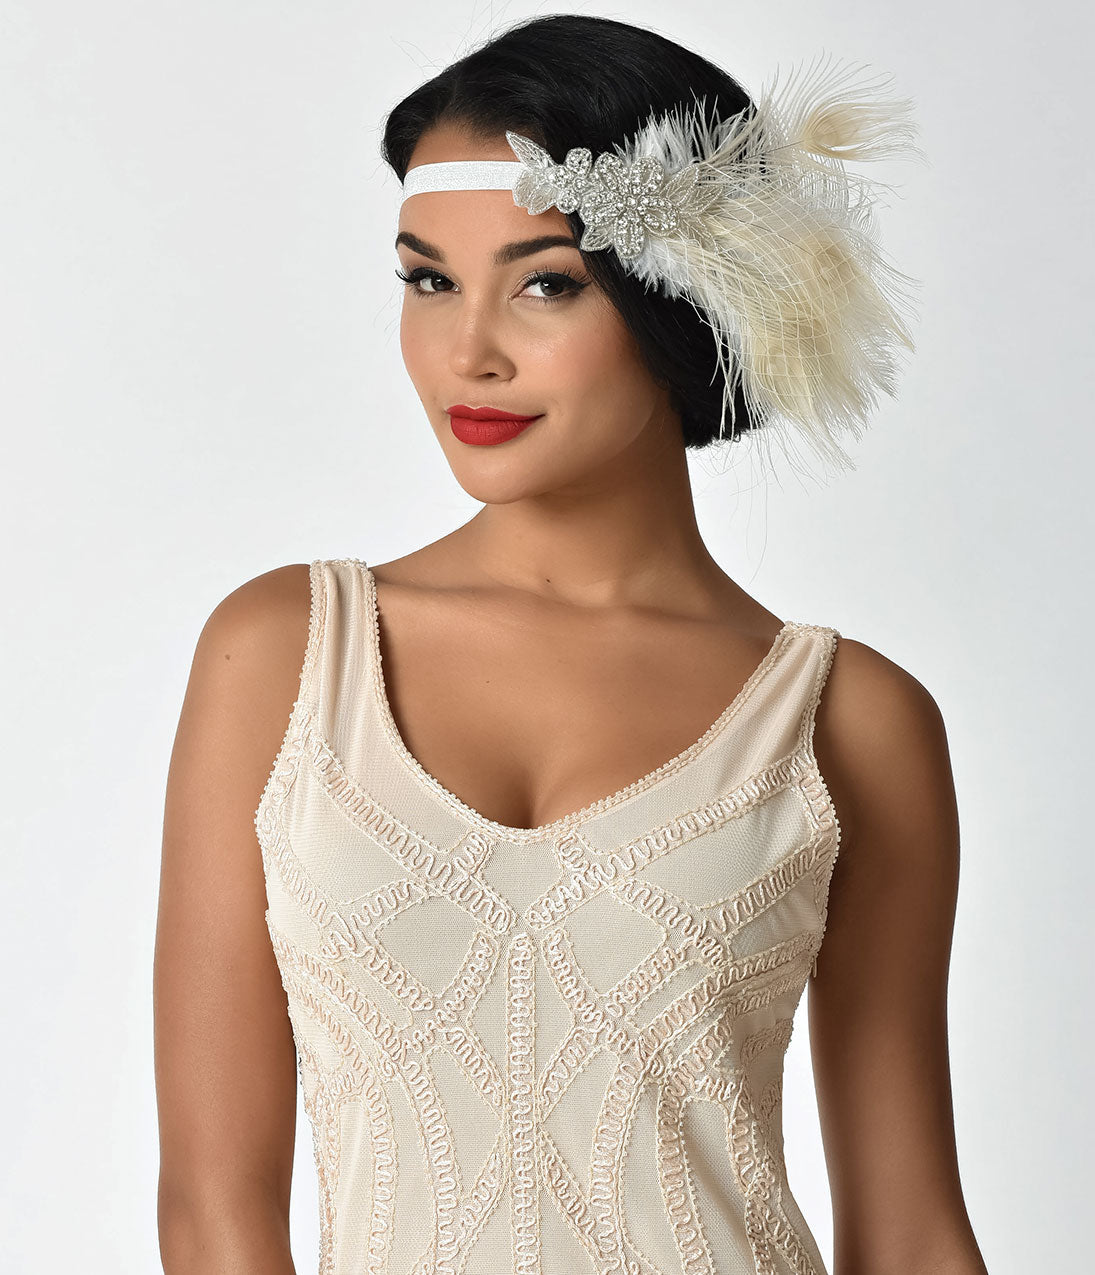 Vintage Hair Accessories: Combs, Headbands, Flowers, Scarf, Wigs Unique Vintage Ivory Peacock Feather  Silver Sparkle Stretch Headband $28.00 AT vintagedancer.com